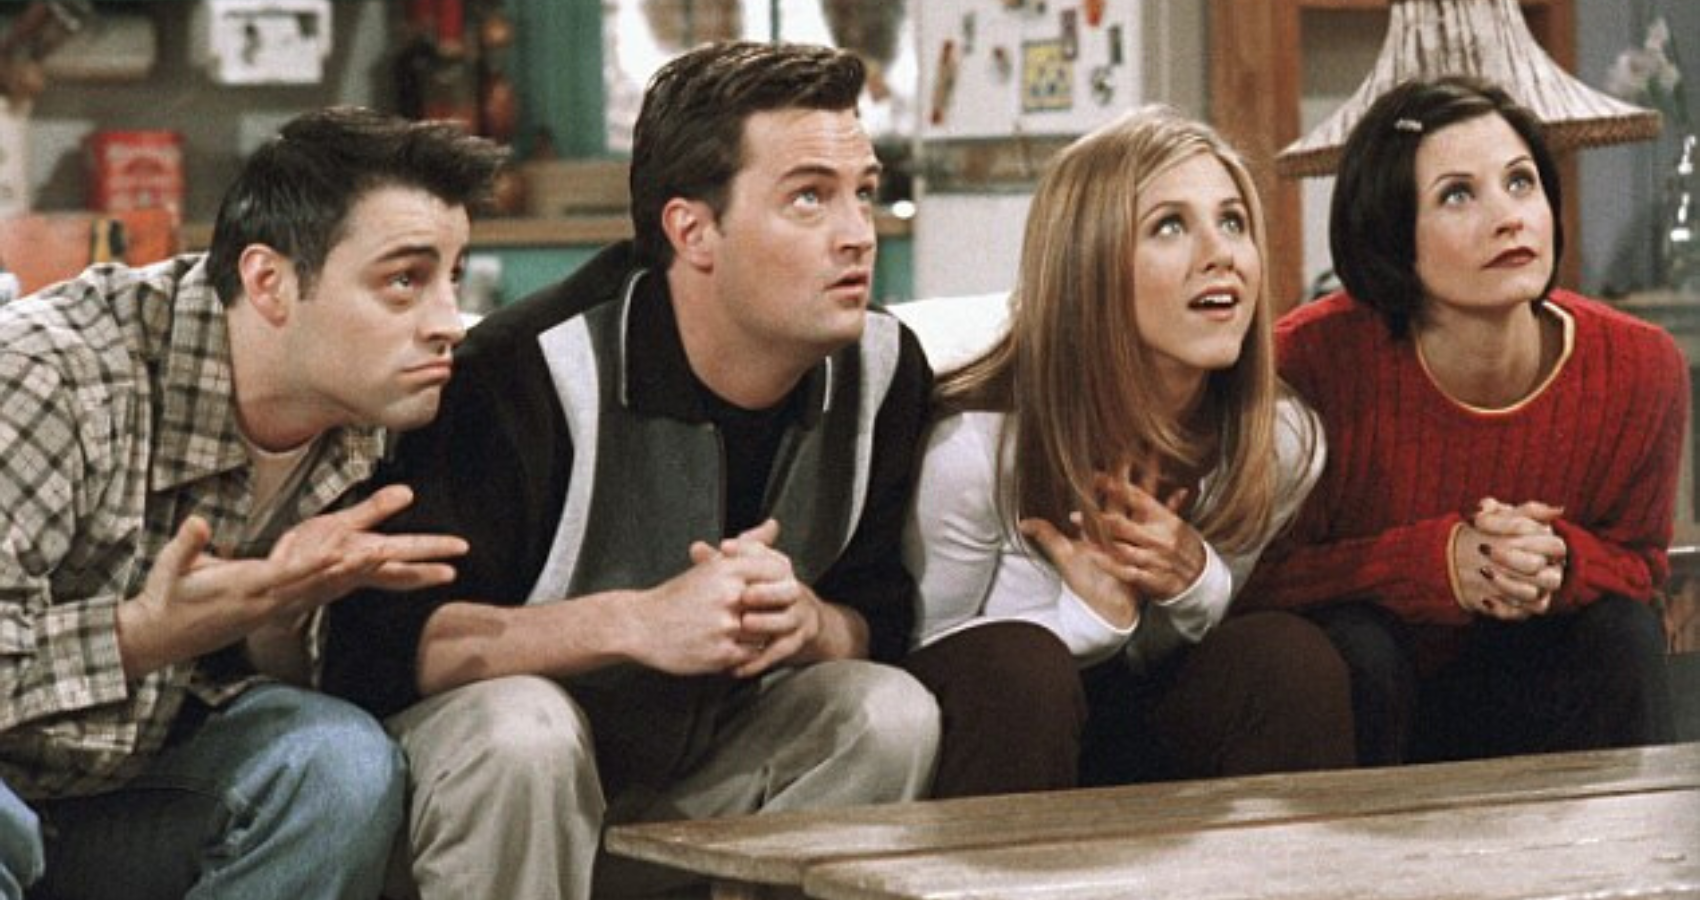 There's A 'Friends' Reunion In The Works At HBO Max